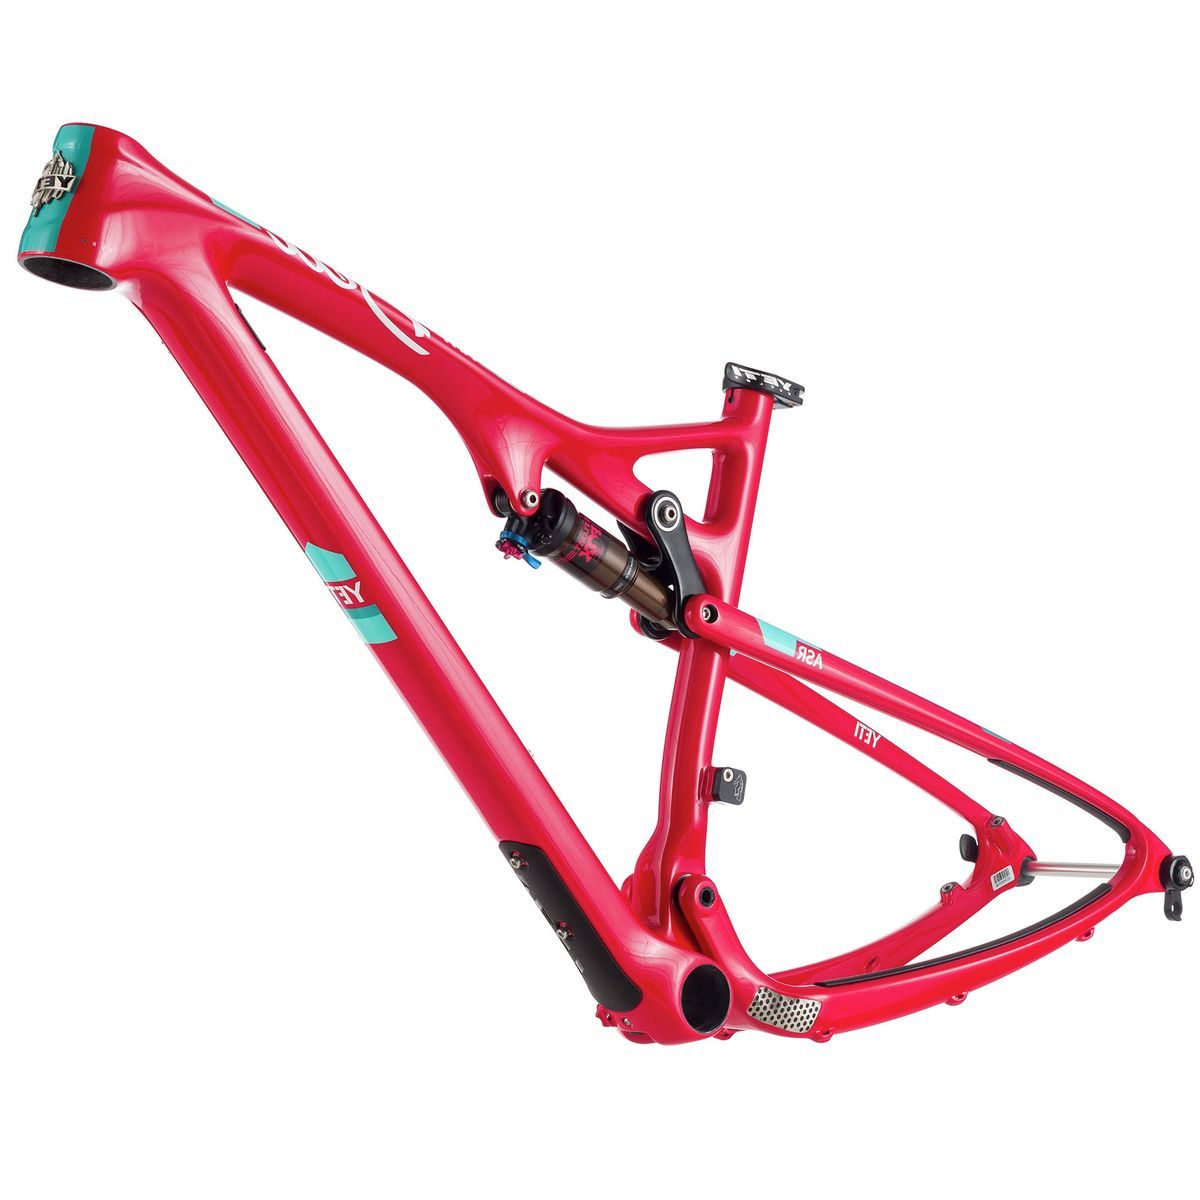 Yeti Cycles ASR Beti Turq Mountain Bike Frame - 2017 - Women's